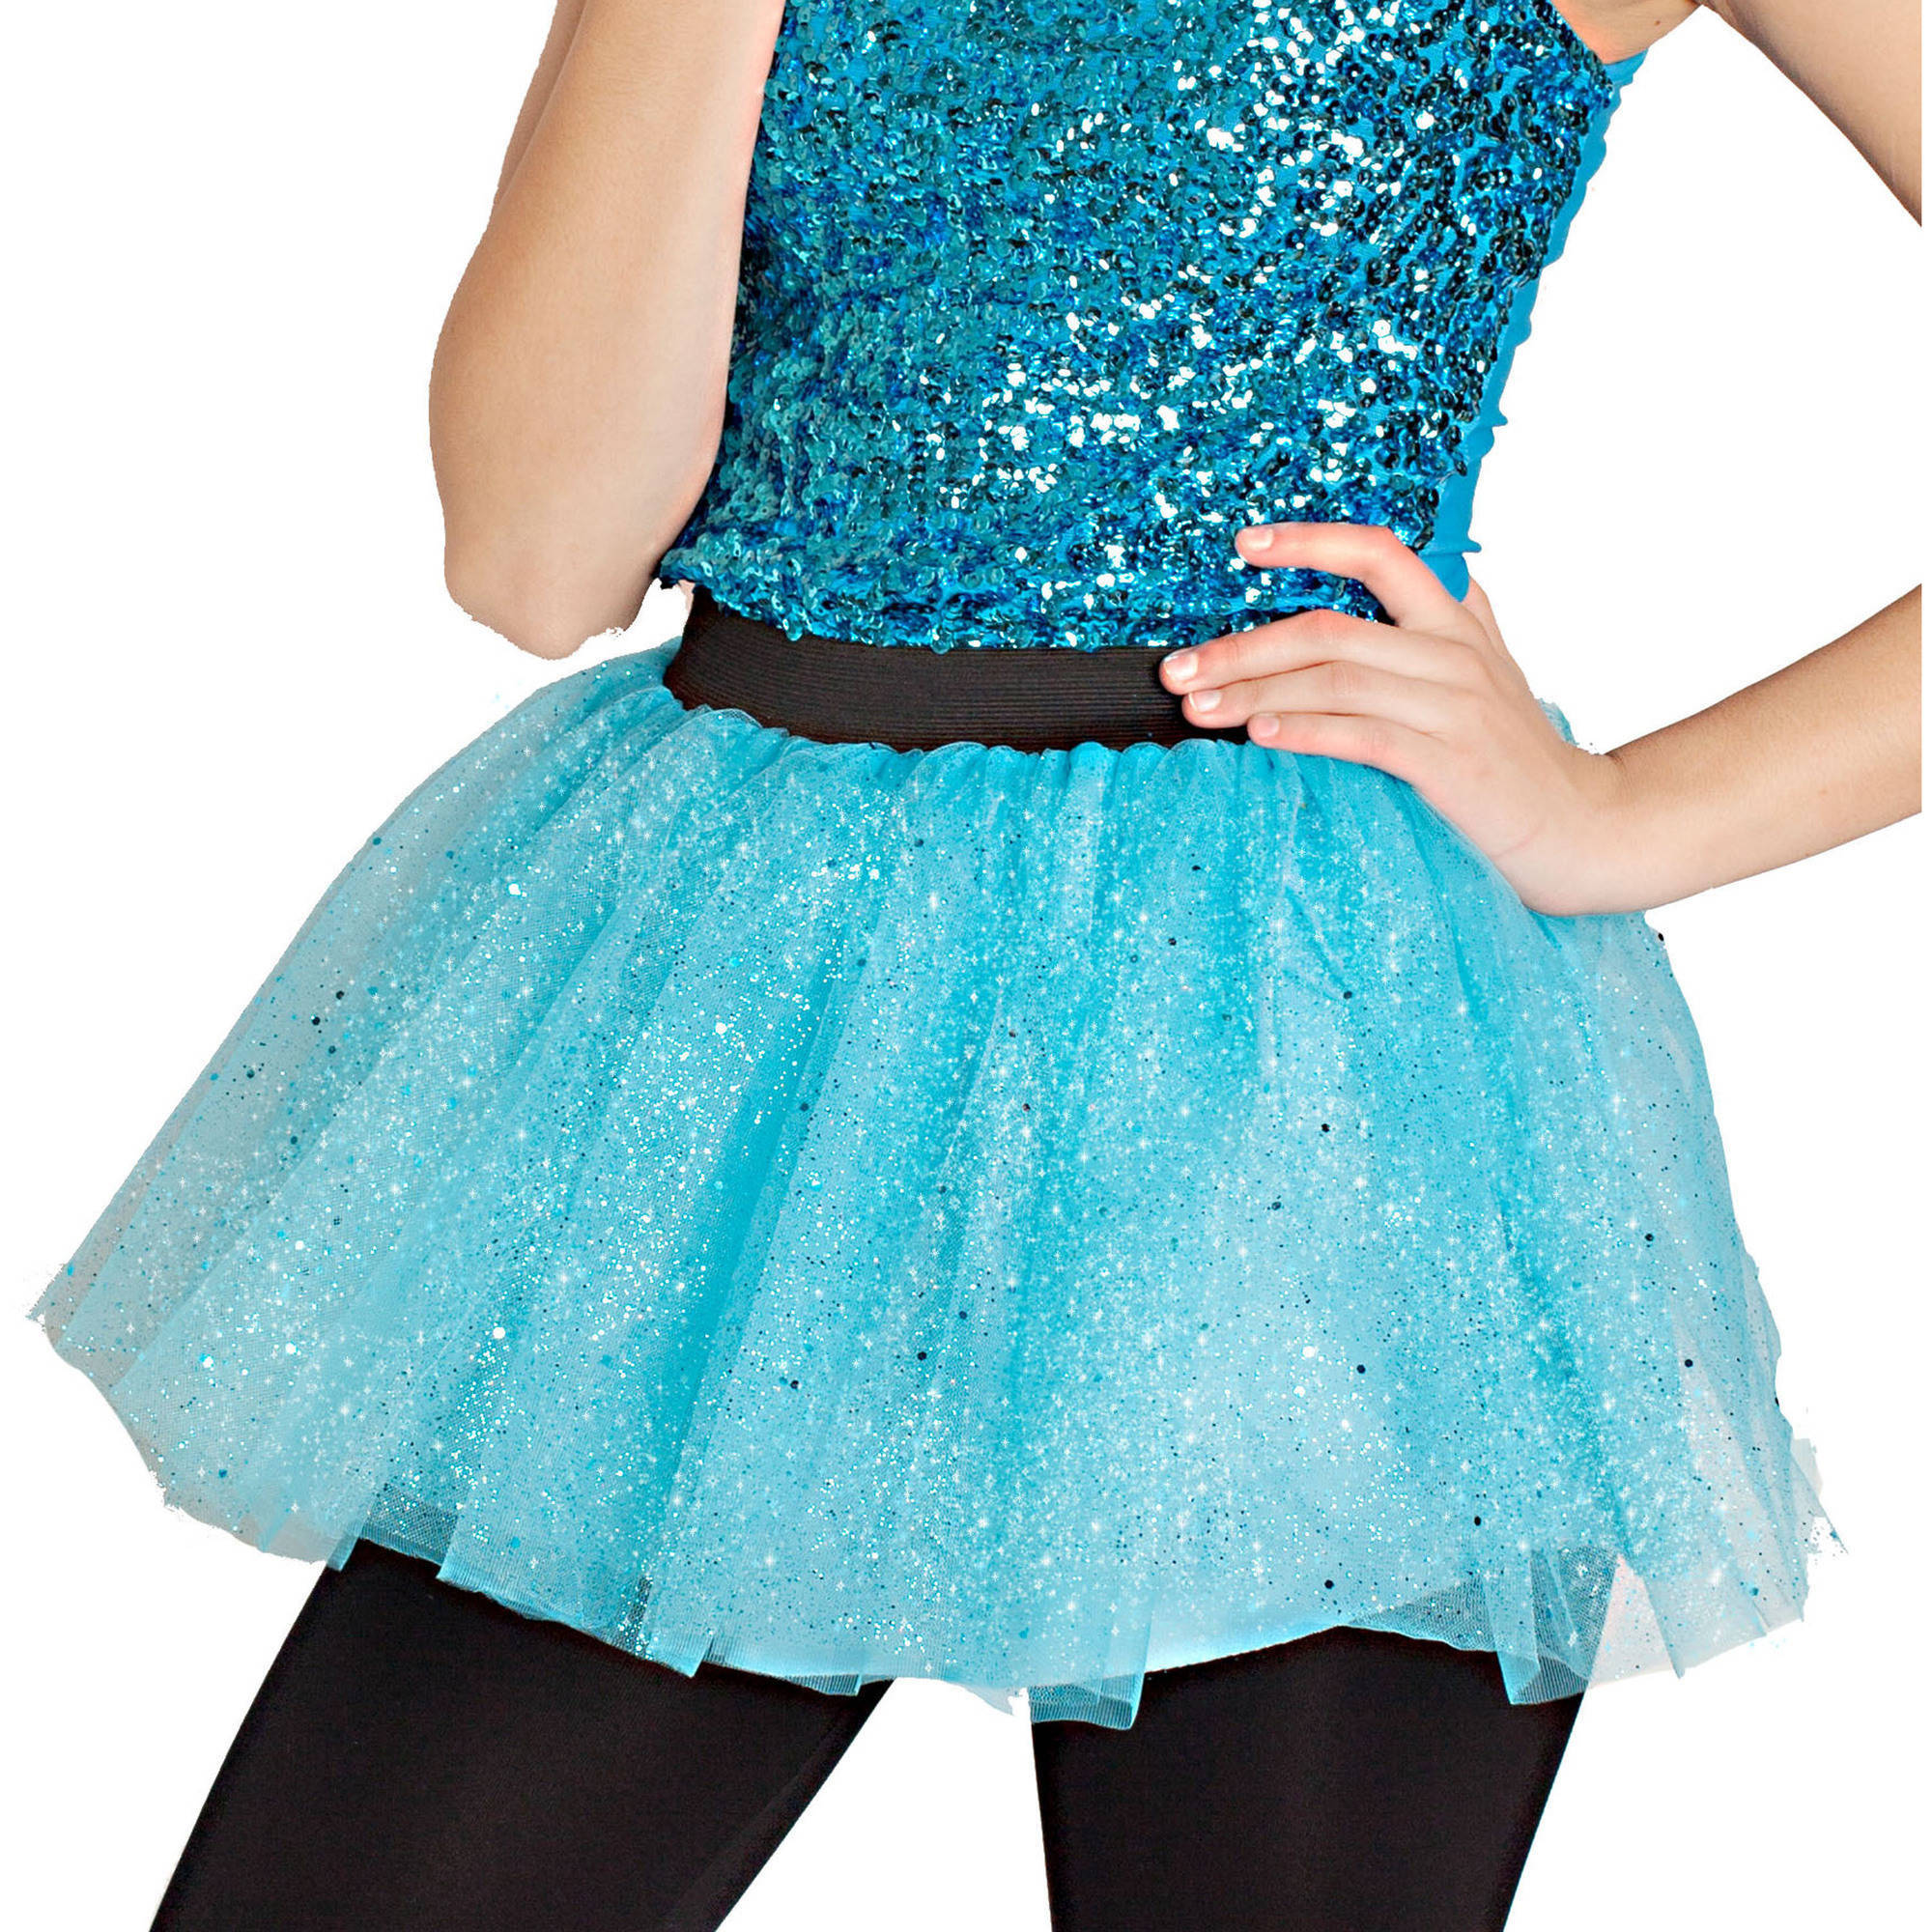 Women's Sparkling Tutu Adult Halloween Costume Accessory